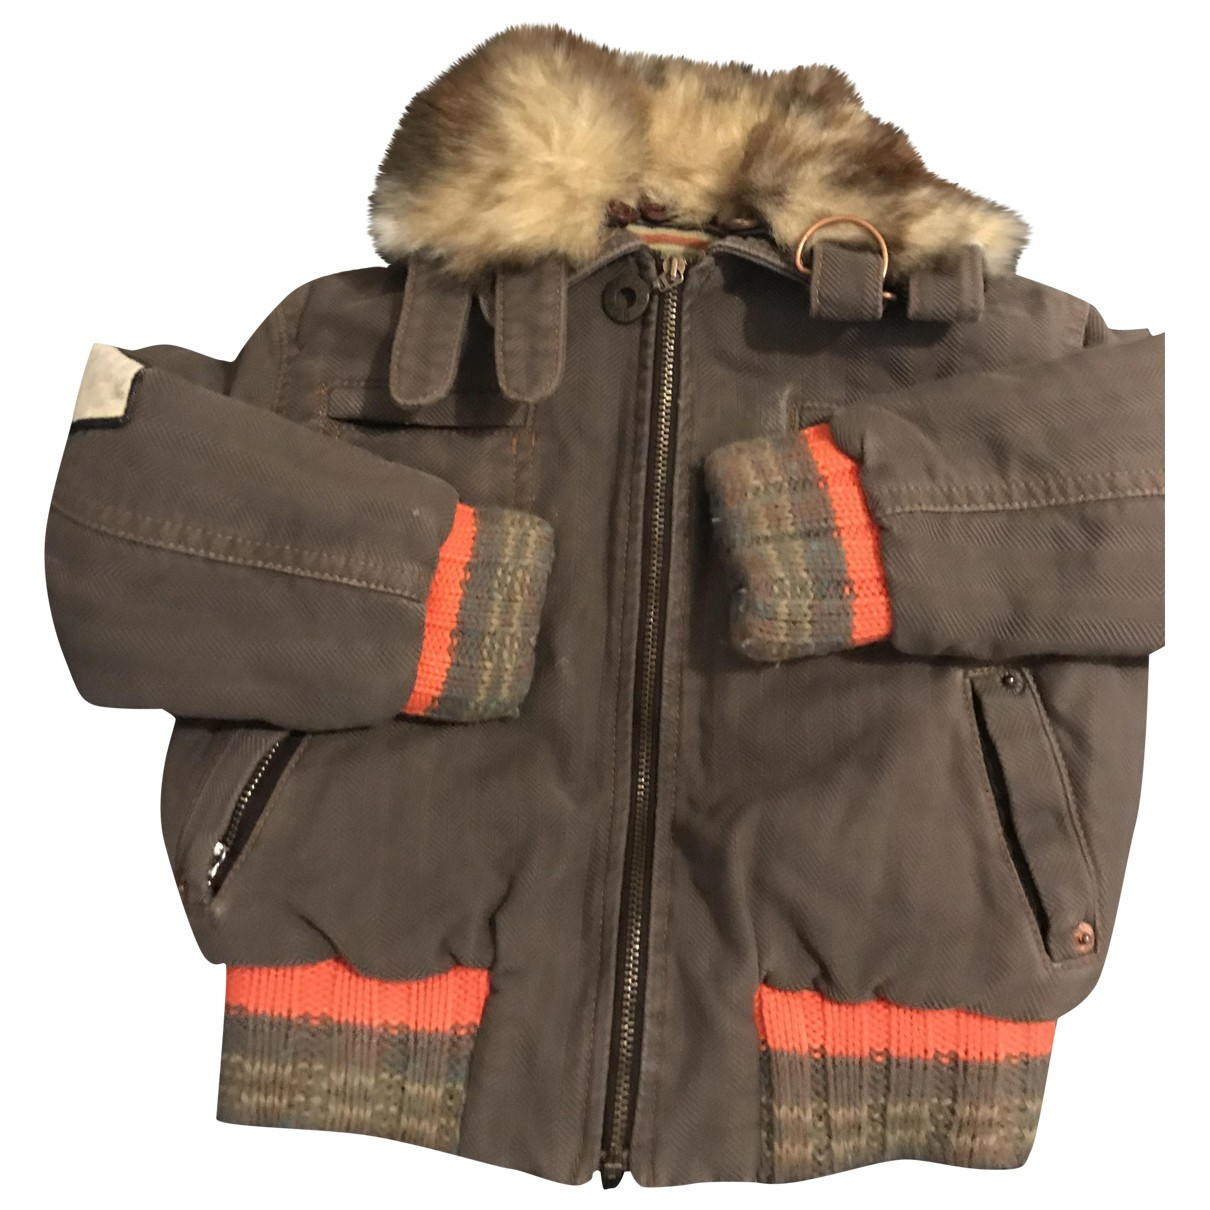 D&g \N Khaki Cotton jacket & coat for Kids 2 years - up to 86cm FR